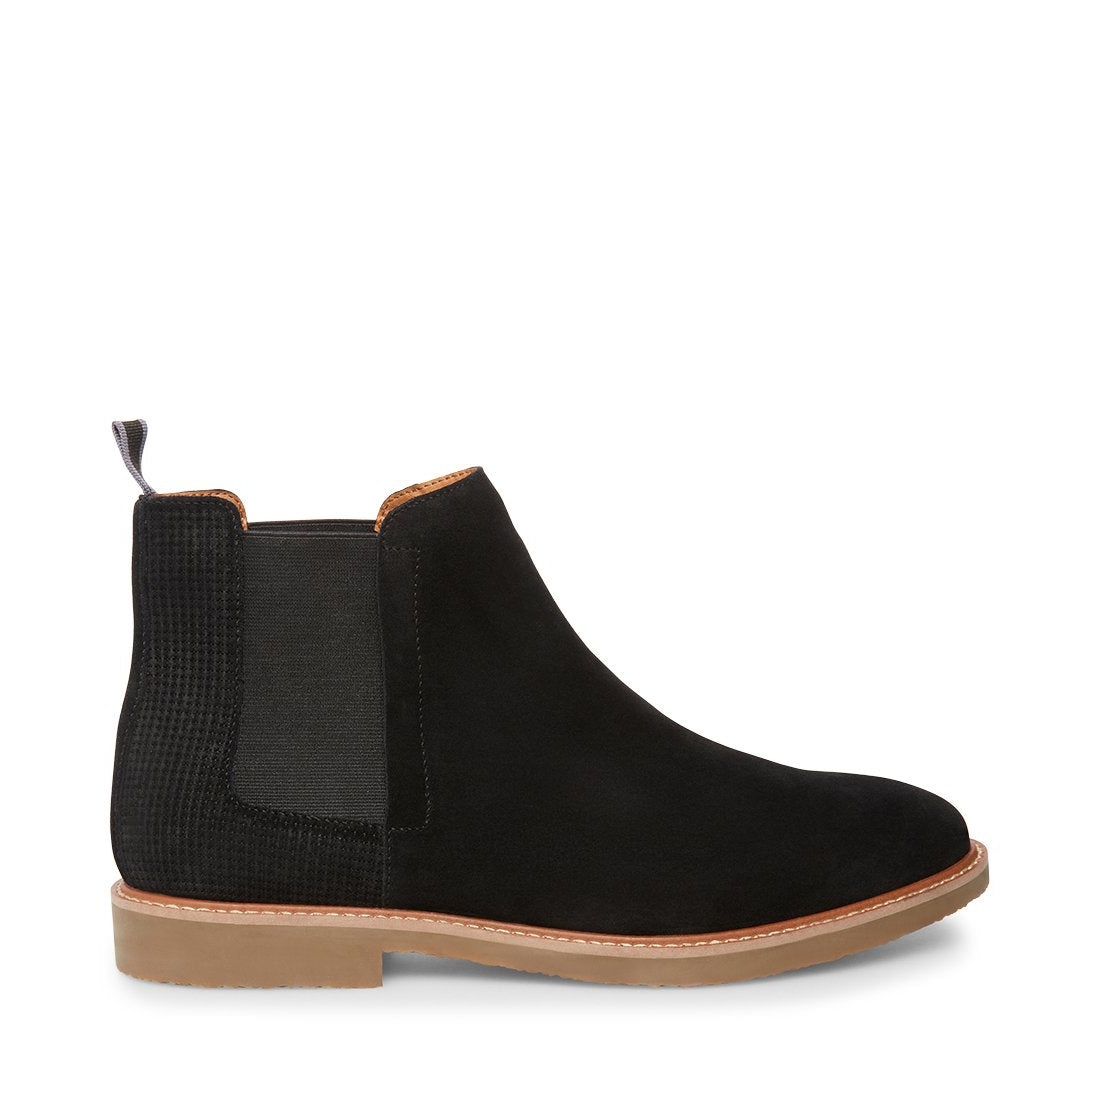 HIGHLYTE BLACK SUEDE - Steve Madden